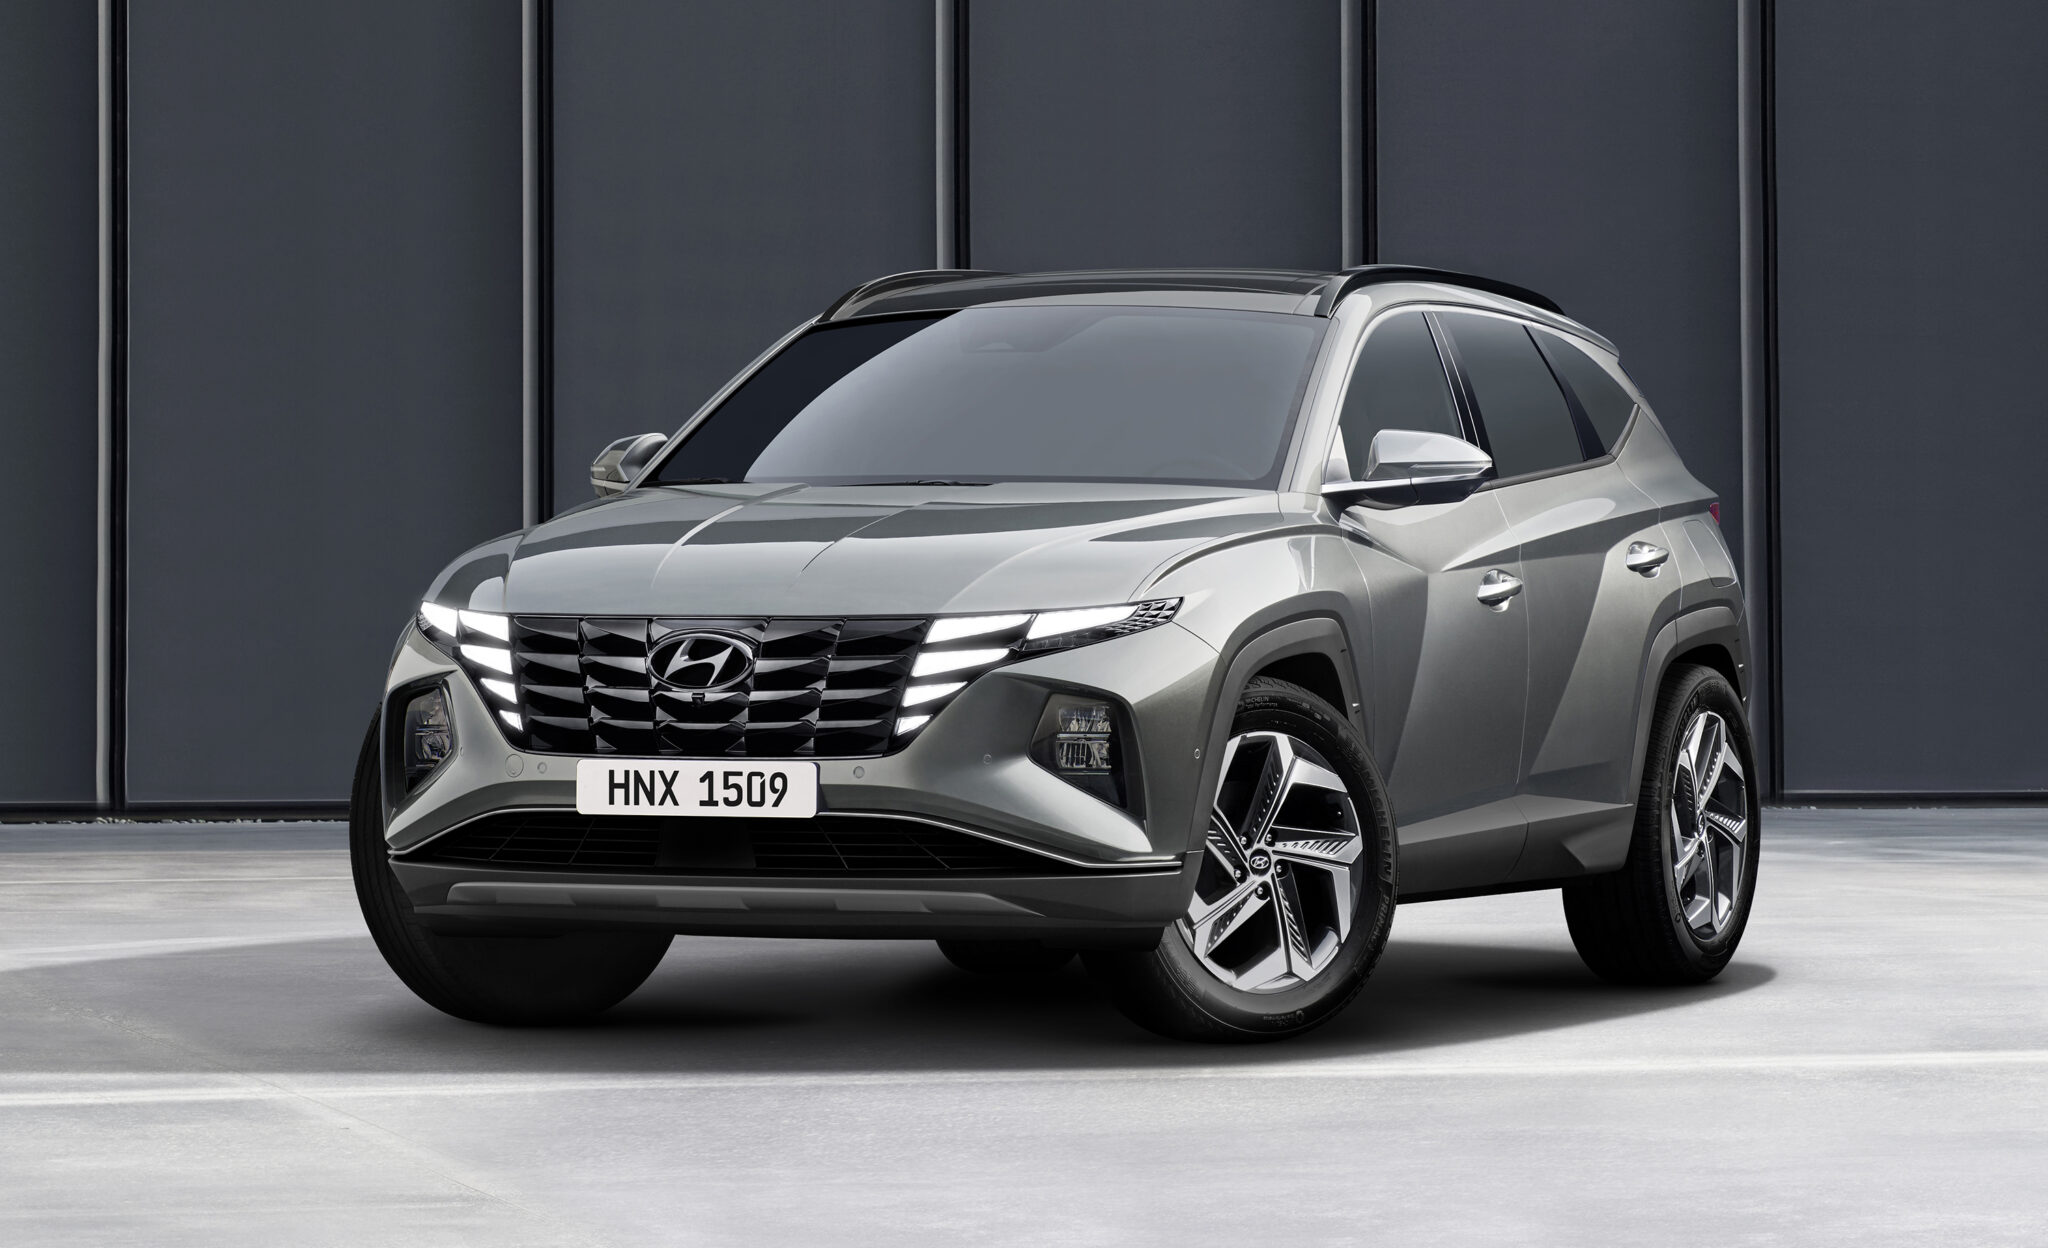 AT NAPLETON NEWS: THE NEW HYUNDAI TUCSON LAUNCH